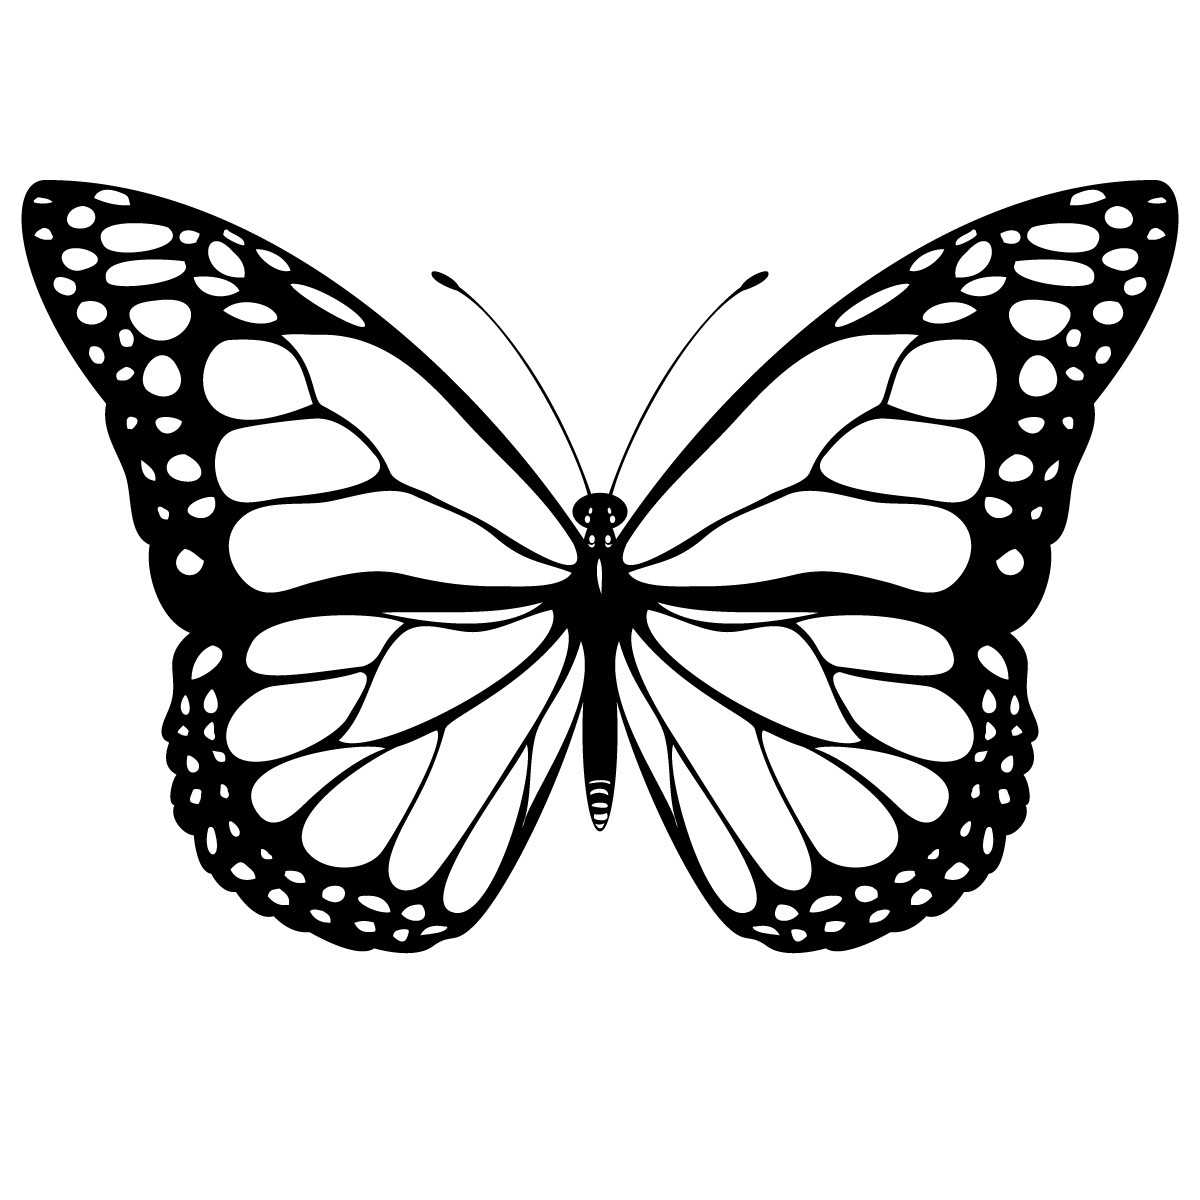 Cool Butterfly Drawings - ClipArt Best